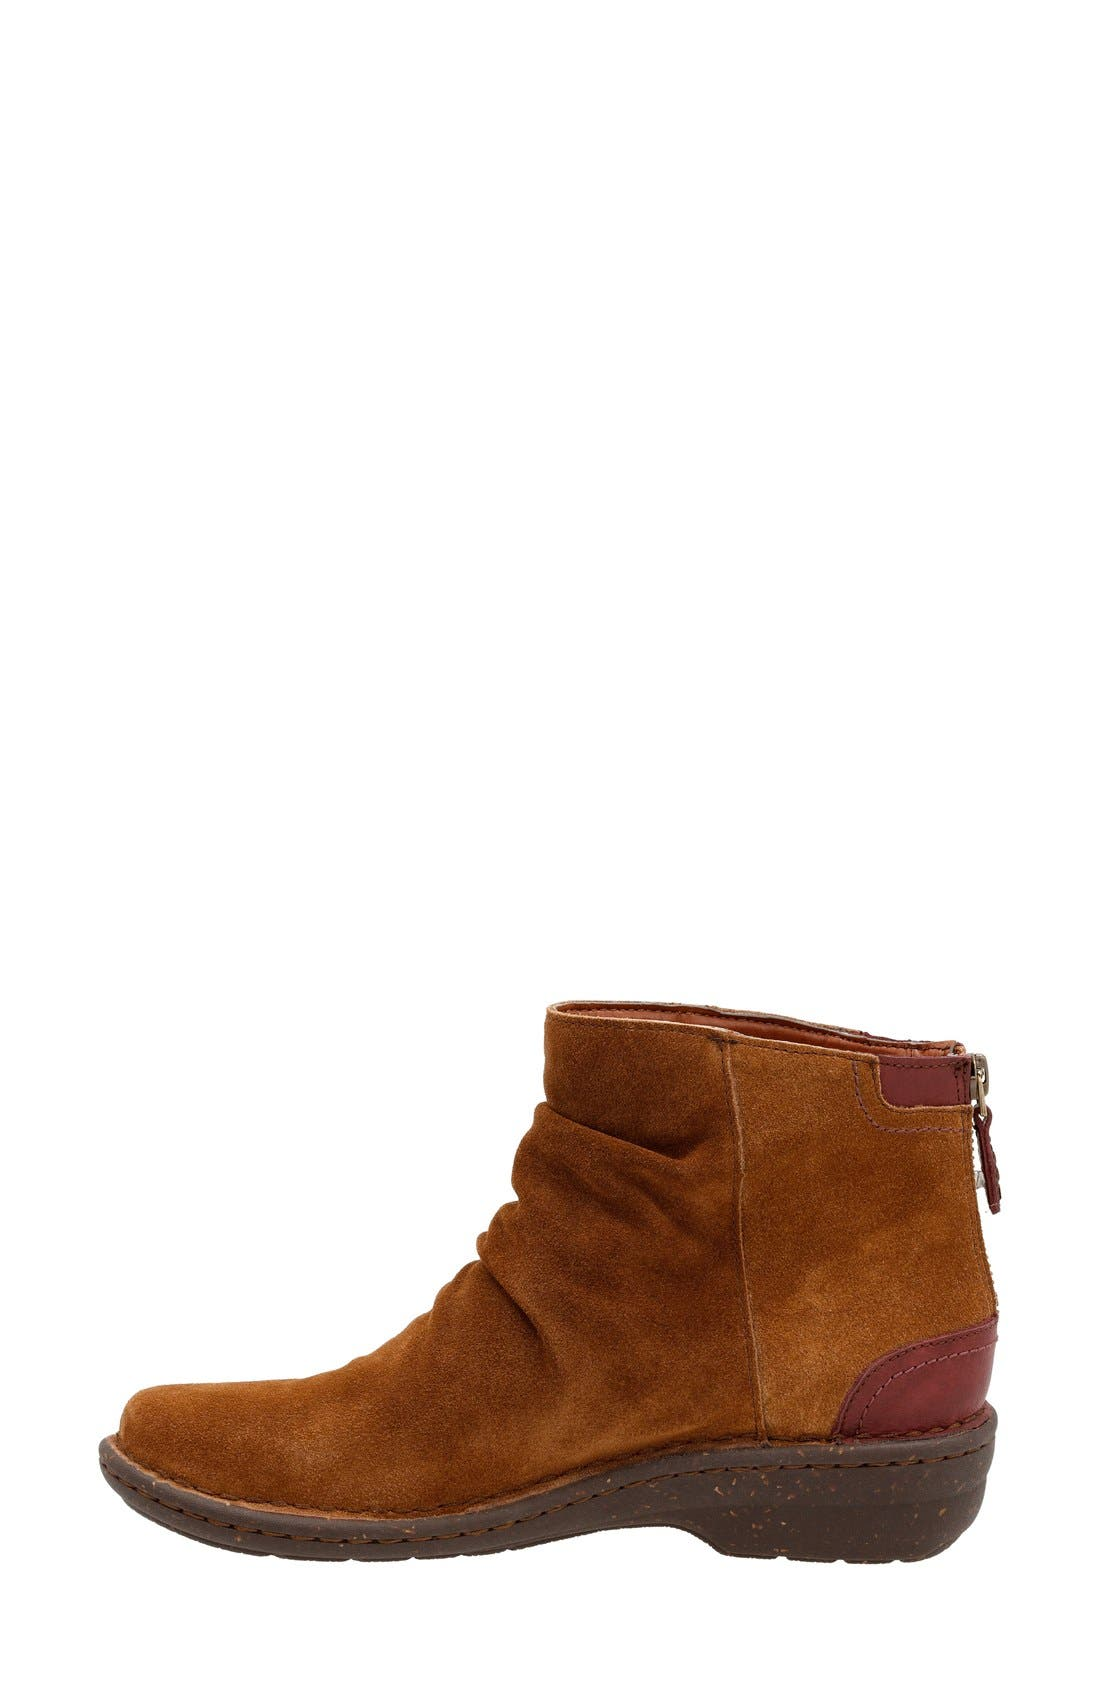 'Avington Swan' Ankle Boot,                             Alternate thumbnail 2, color,                             204